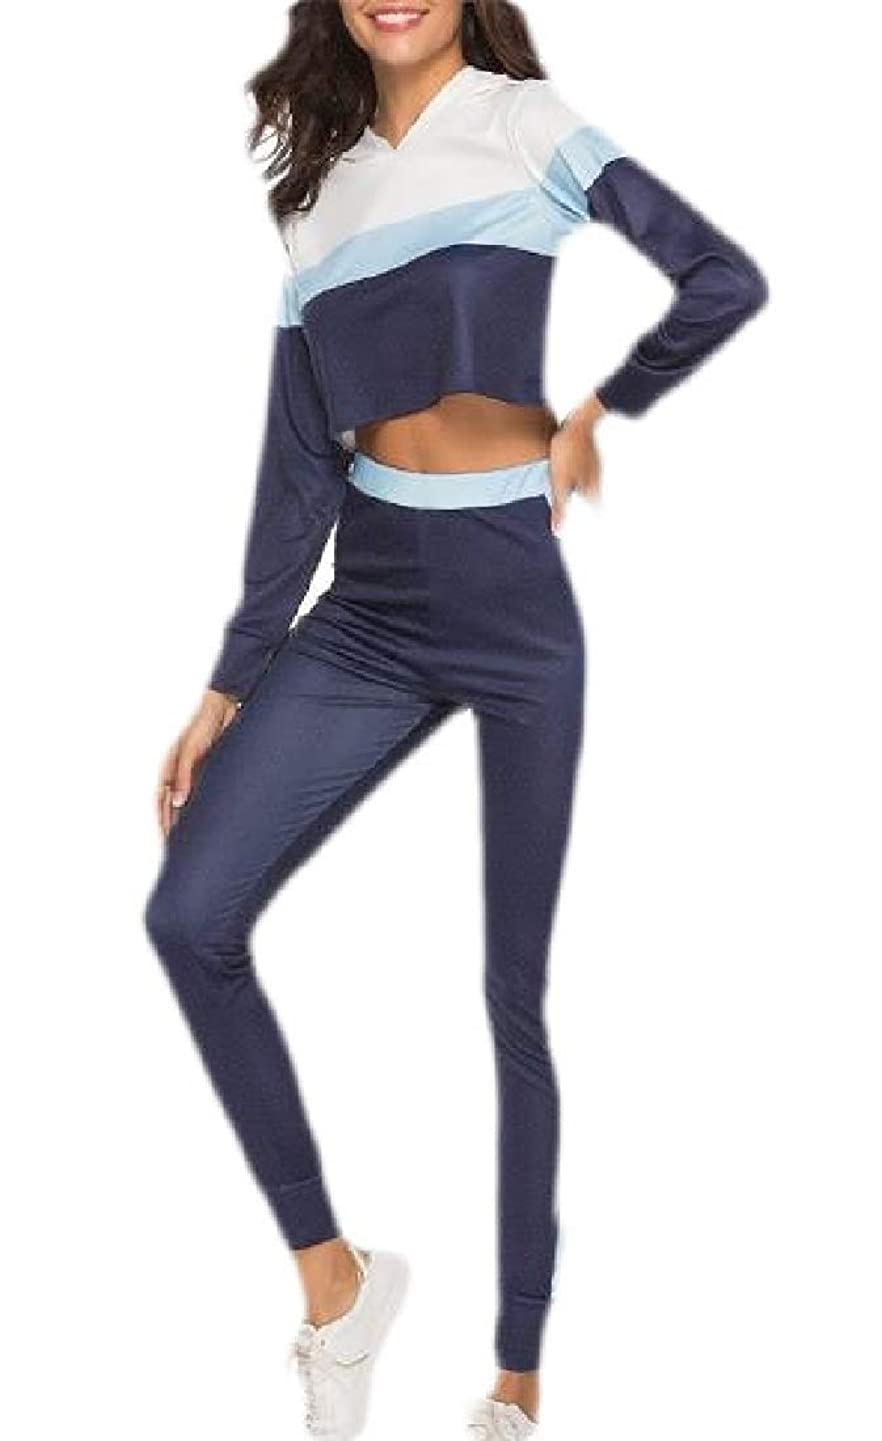 八百屋つなぐミキサーWomen Collision Color Sport Bodycon Crop Top Long Skinny Pant Set Tracksuit